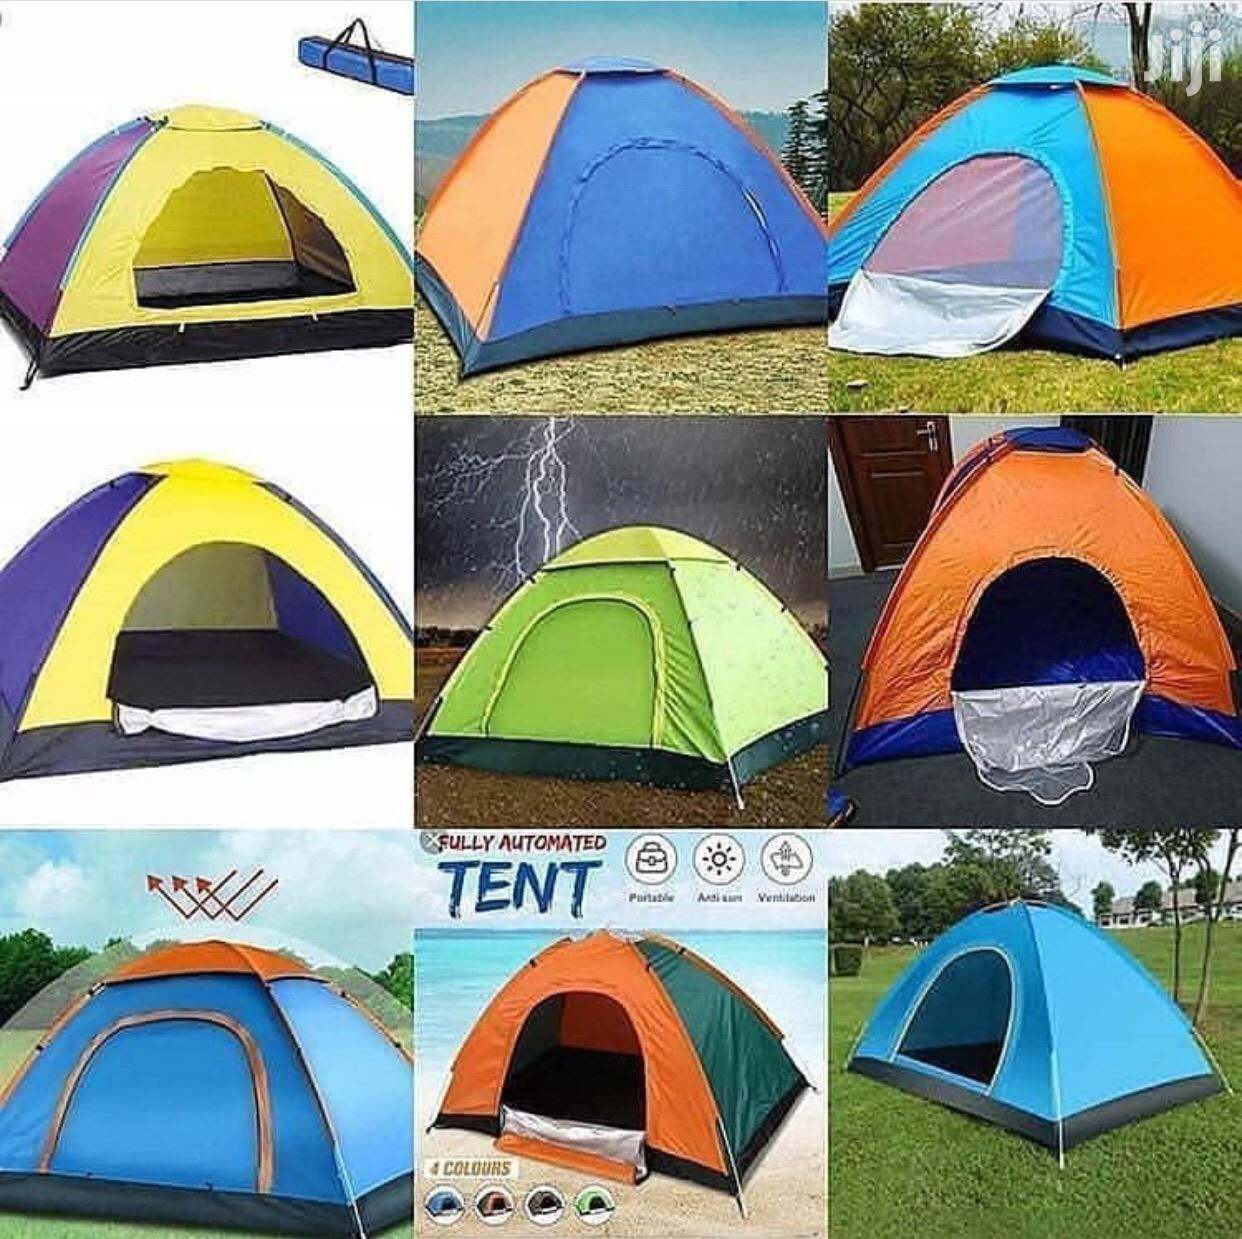 Camping Tents 4 People